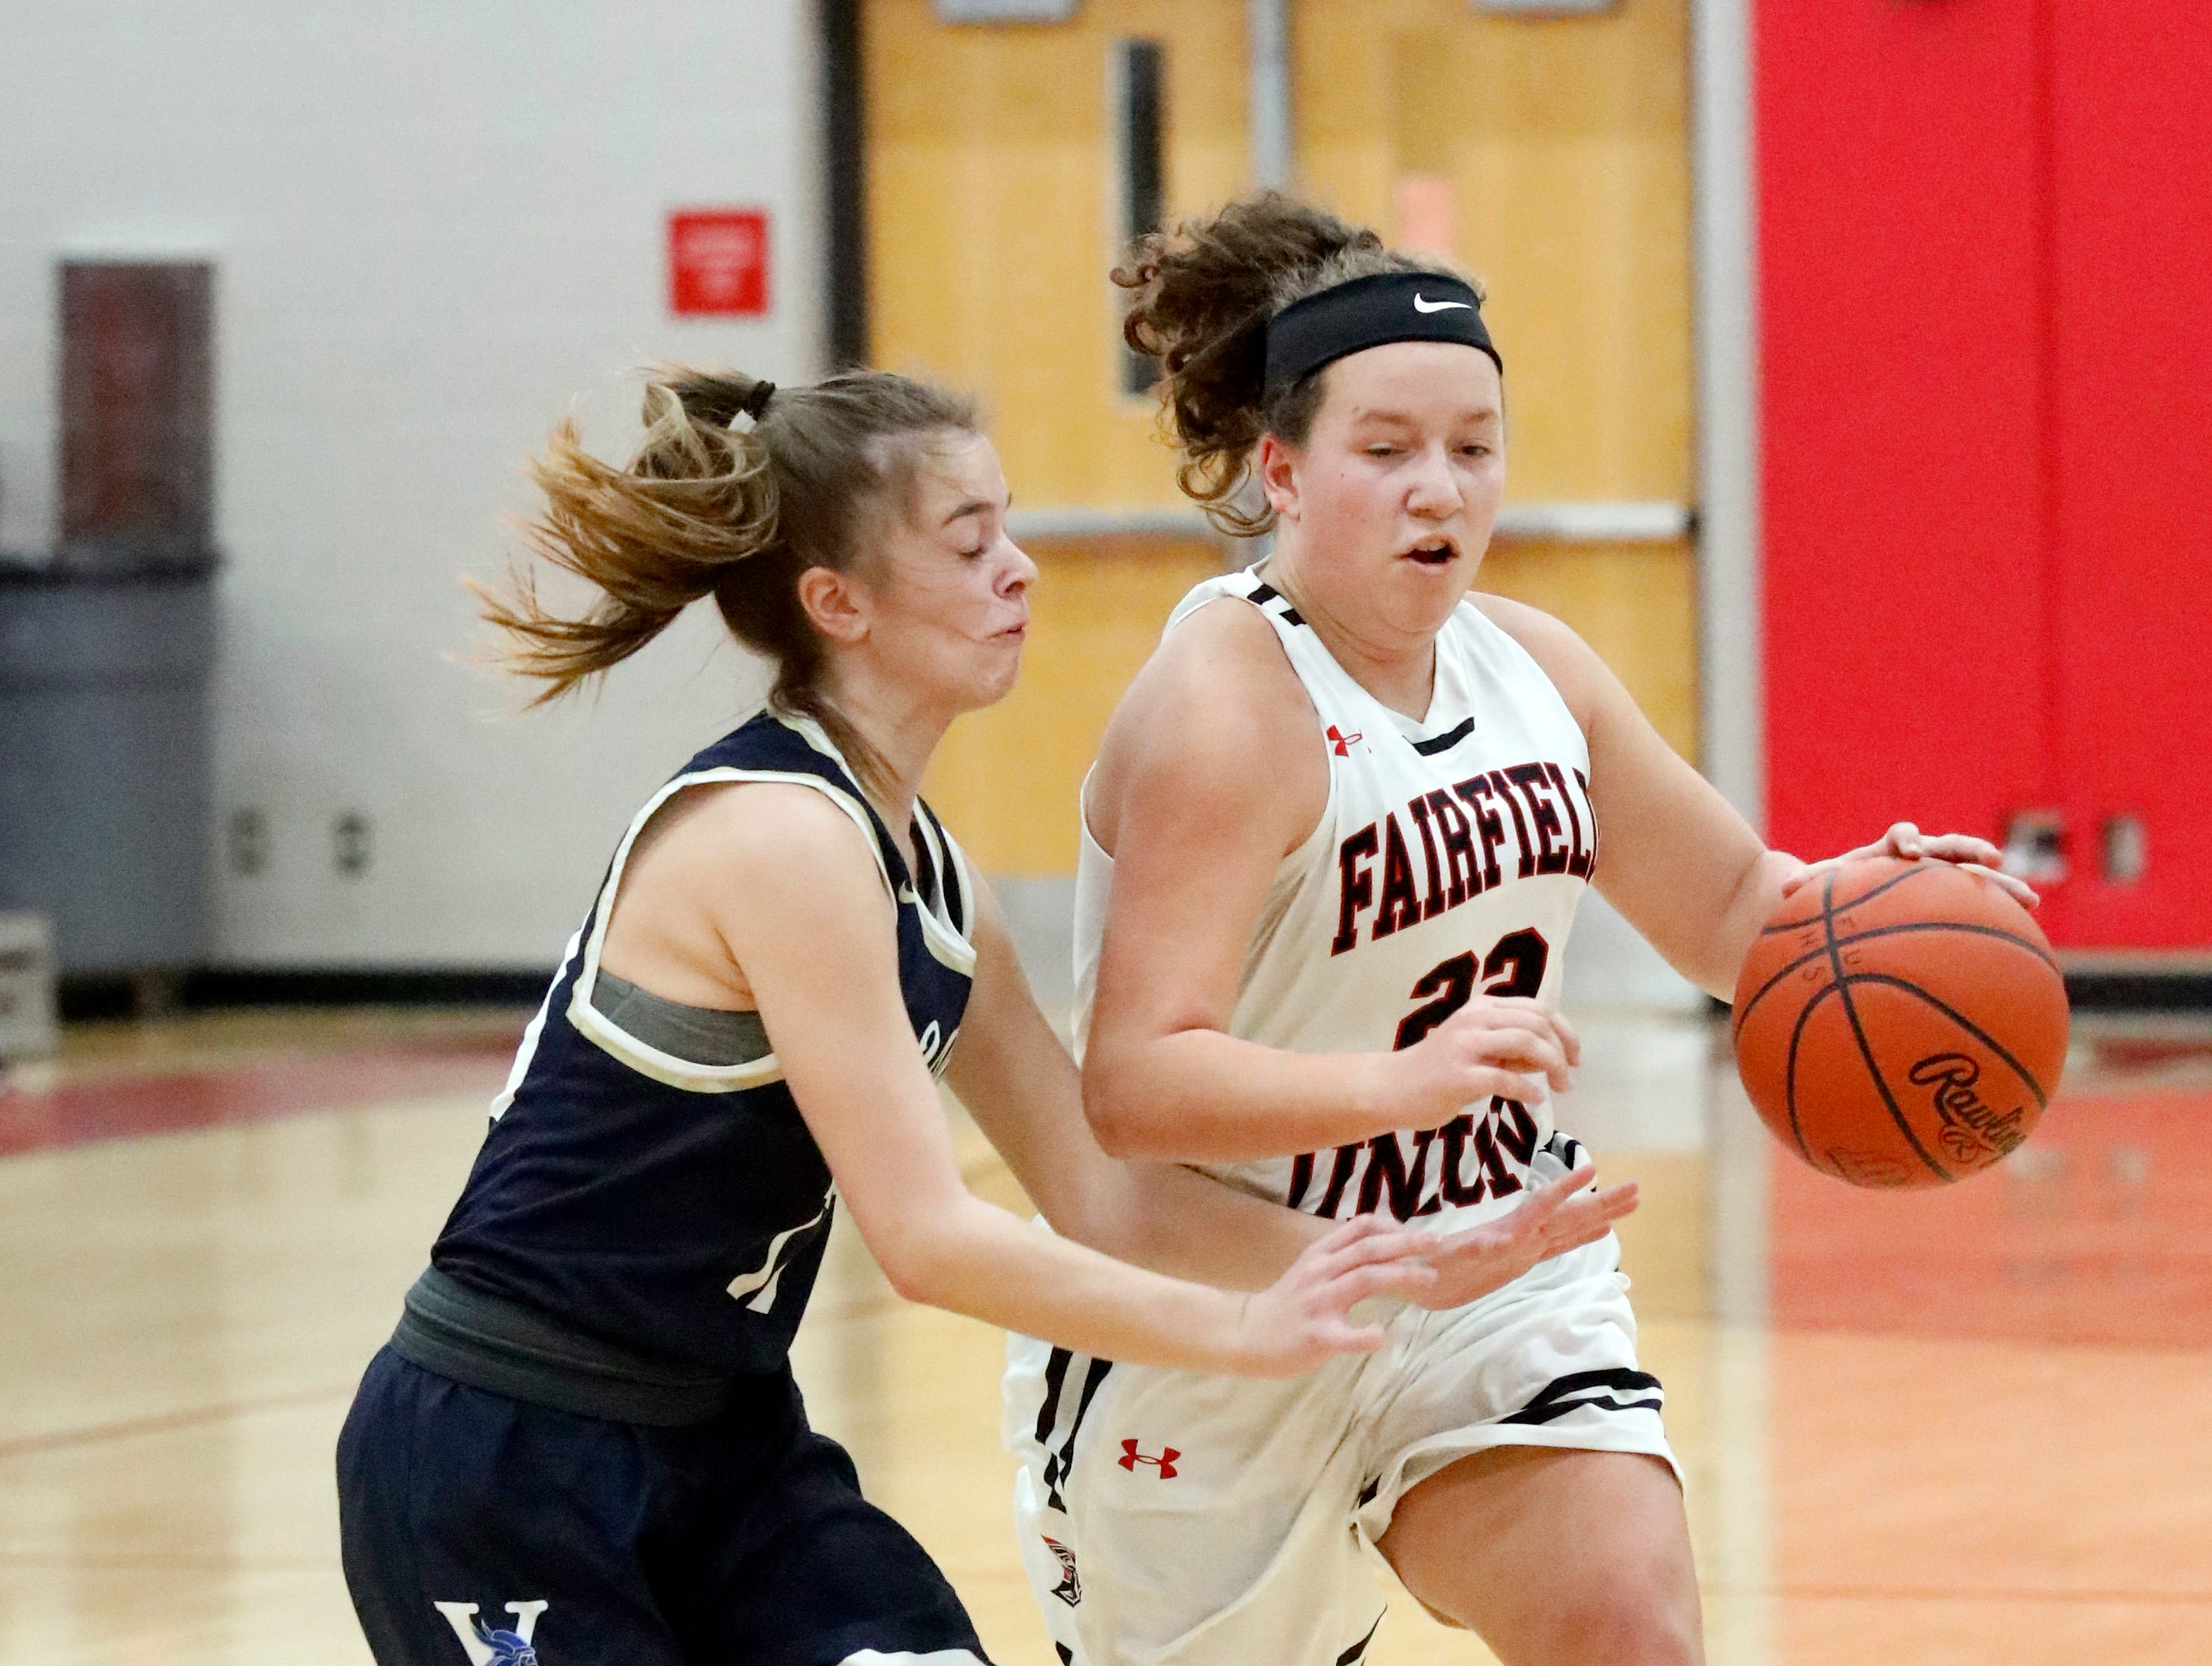 Fairfield Union's Katie Burke brings the ball down the court during Friday night's game, Jan. 25, 2019, against Teays Valley at Fairfield Union High School in Rushville.